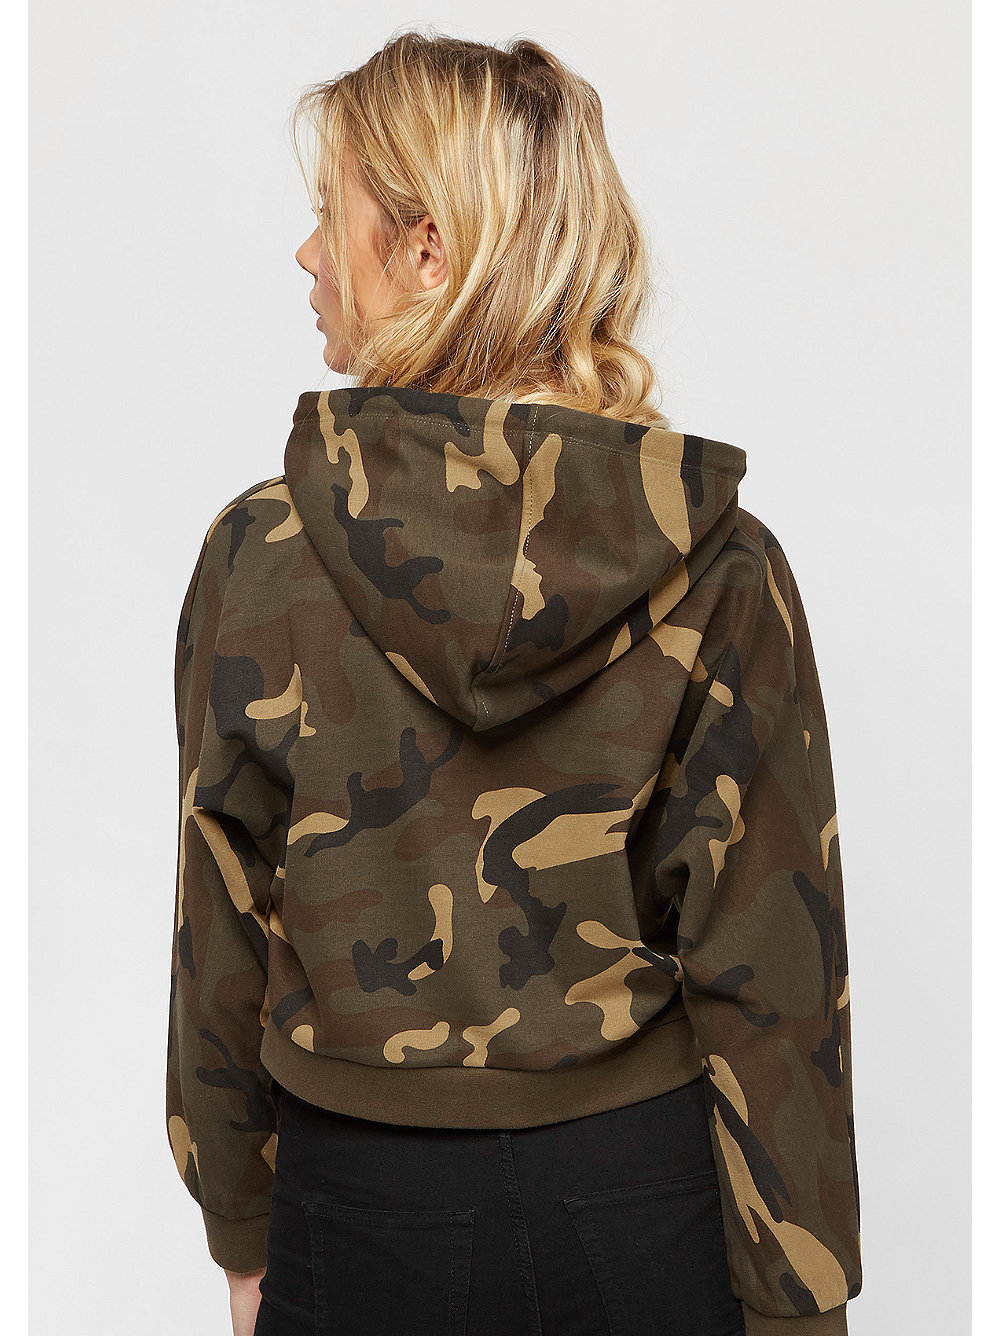 basic logo hoody camo von snipes bestellen. Black Bedroom Furniture Sets. Home Design Ideas